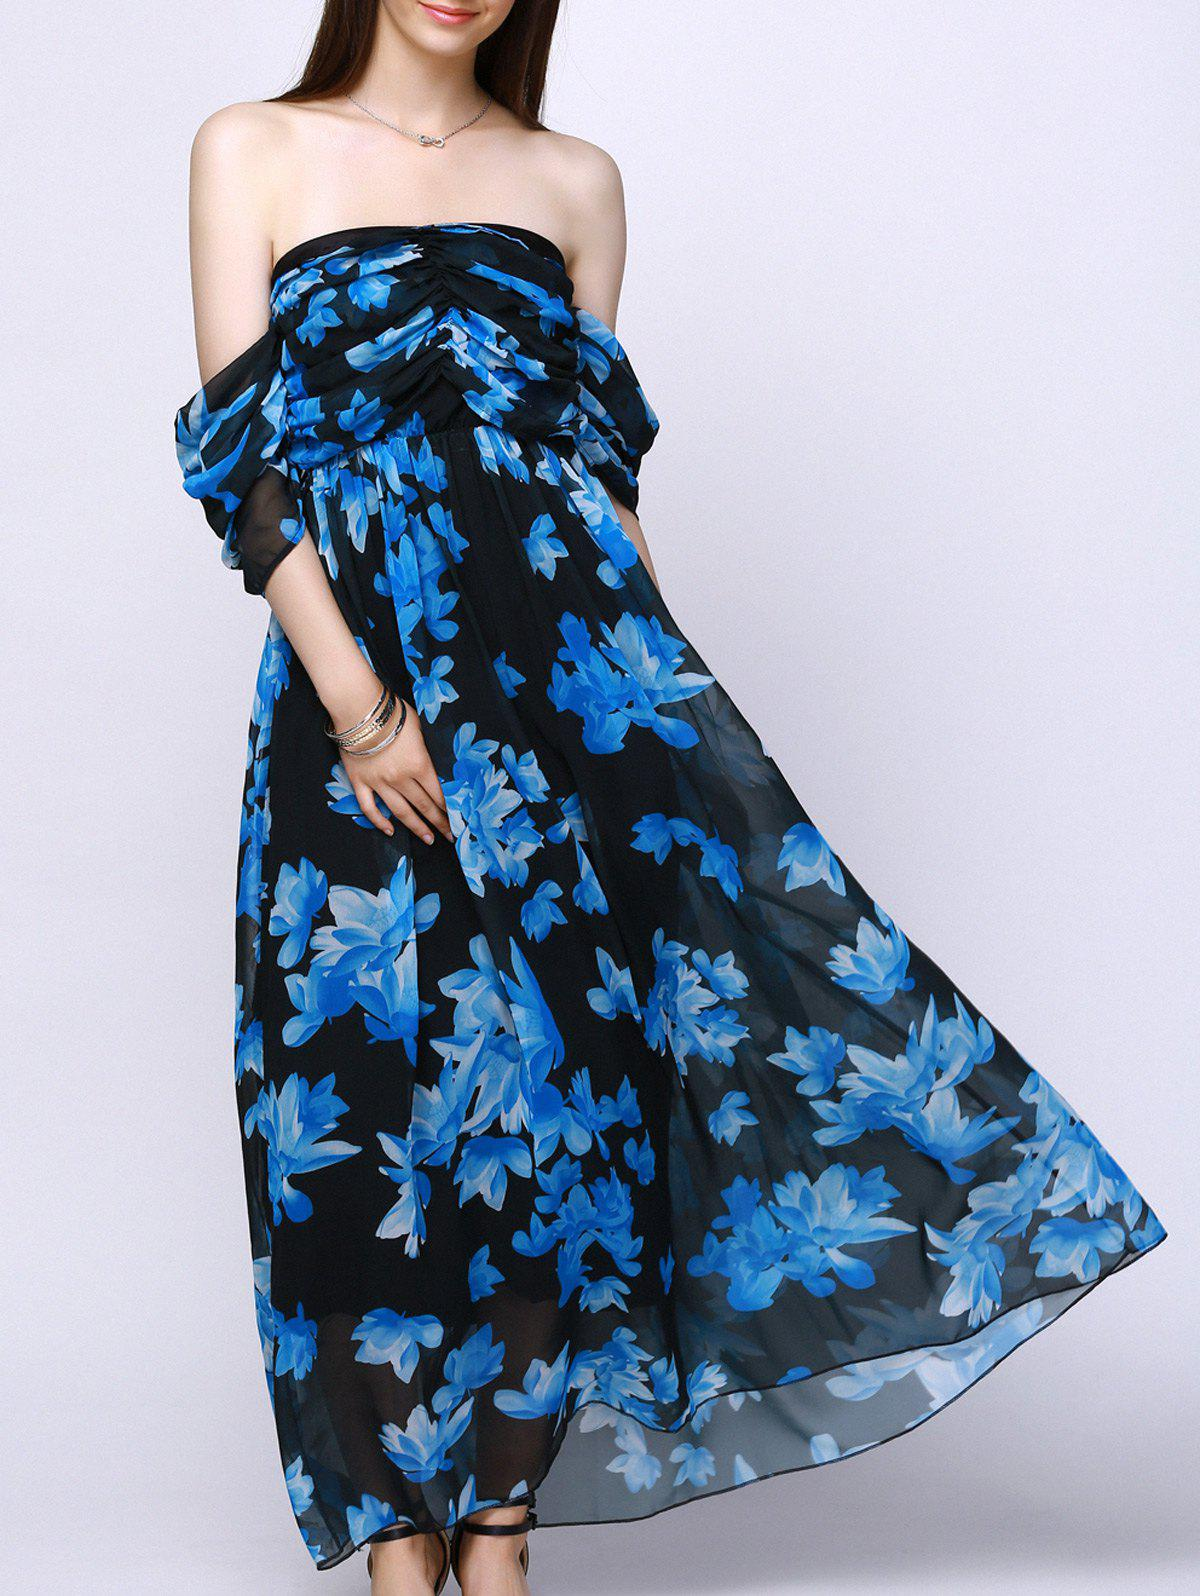 Alluring Strapless Floral Print Draped Sleeves Chiffon Dress For Women